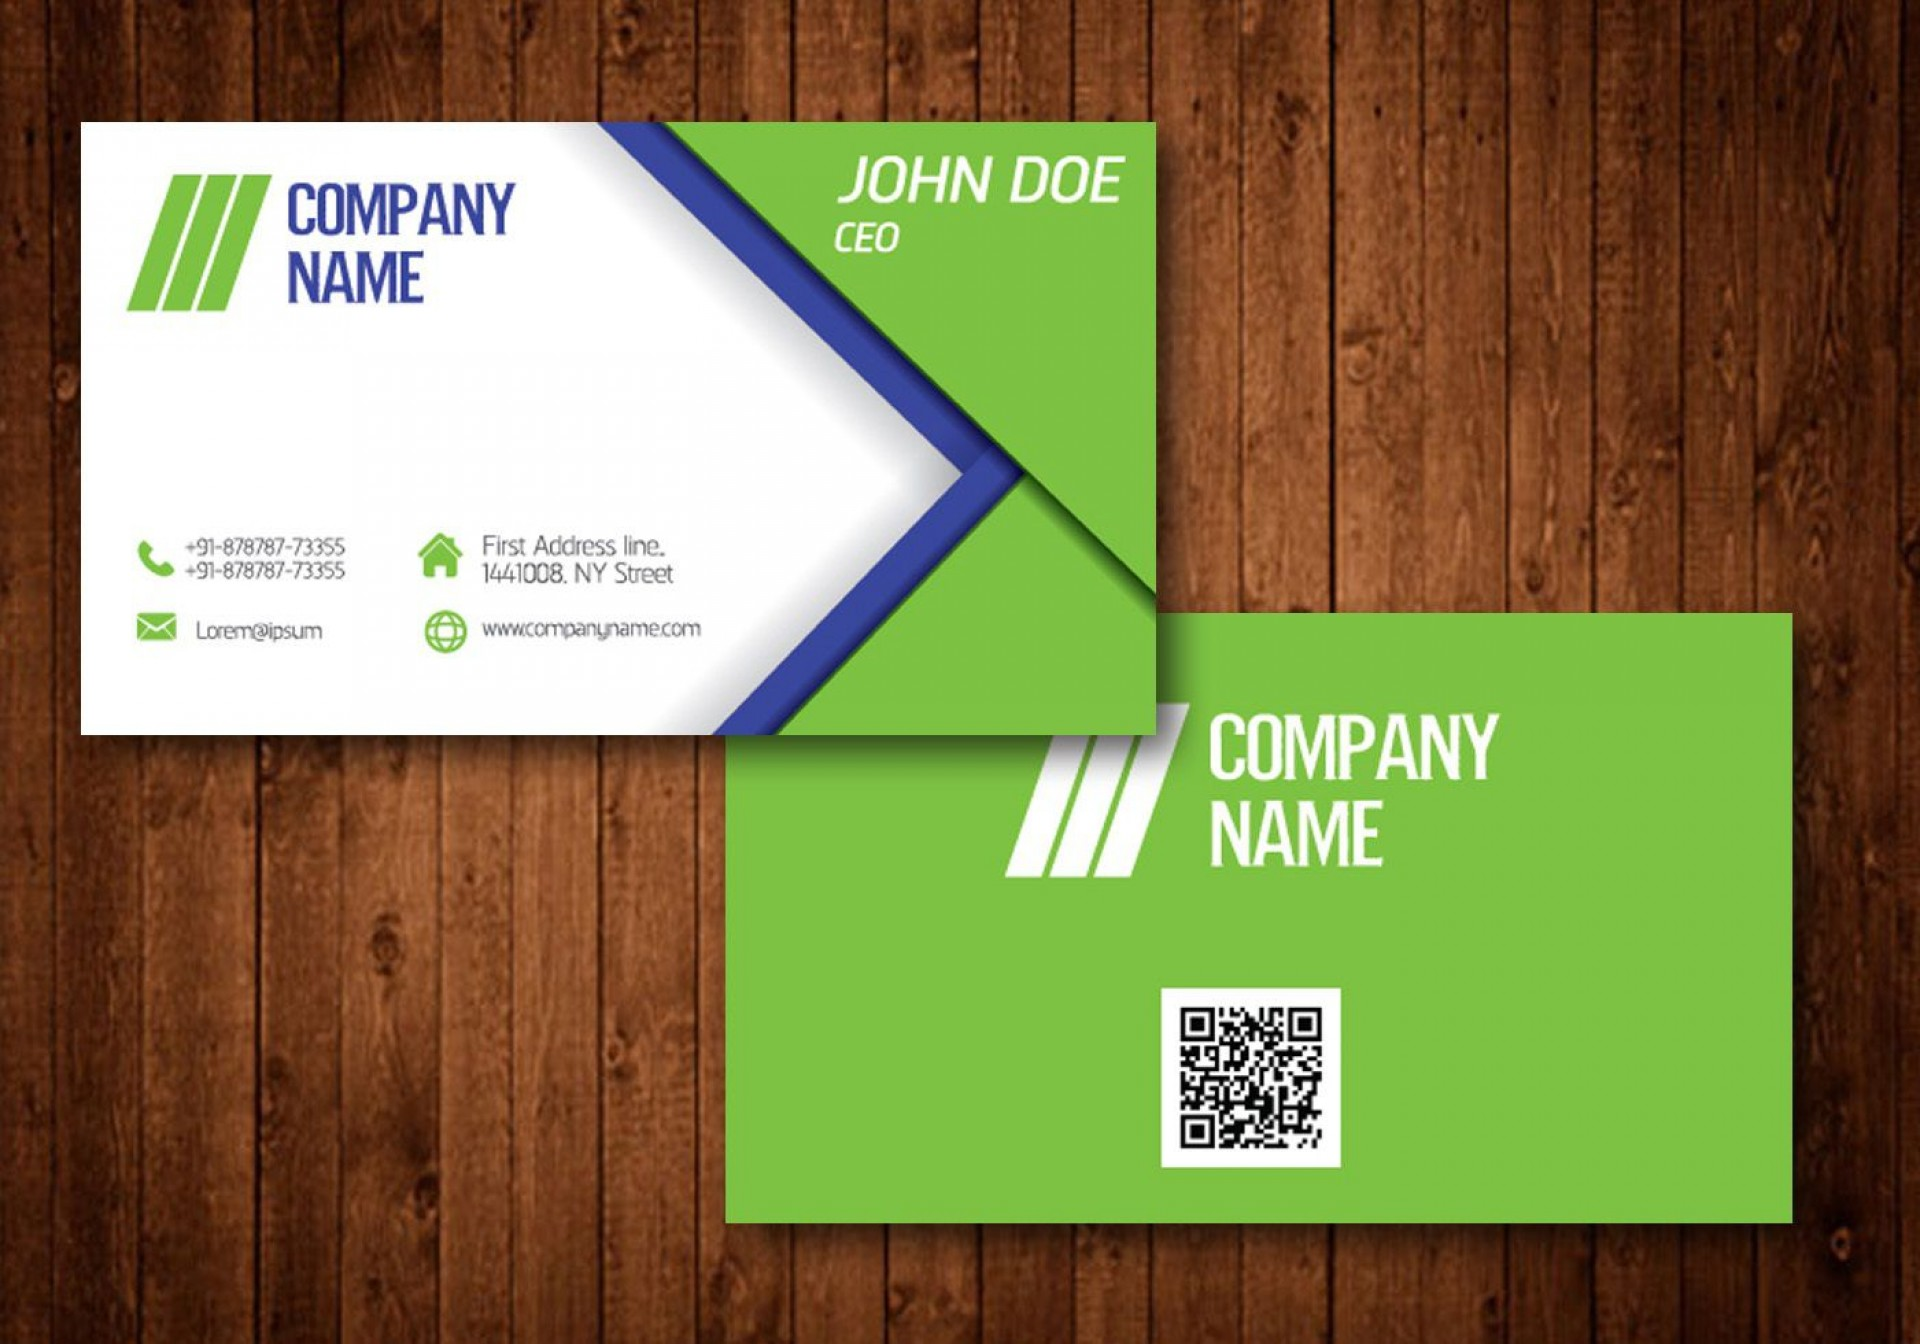 009 Frightening Name Card Template Free Download High Def  Table Ai Wedding1920